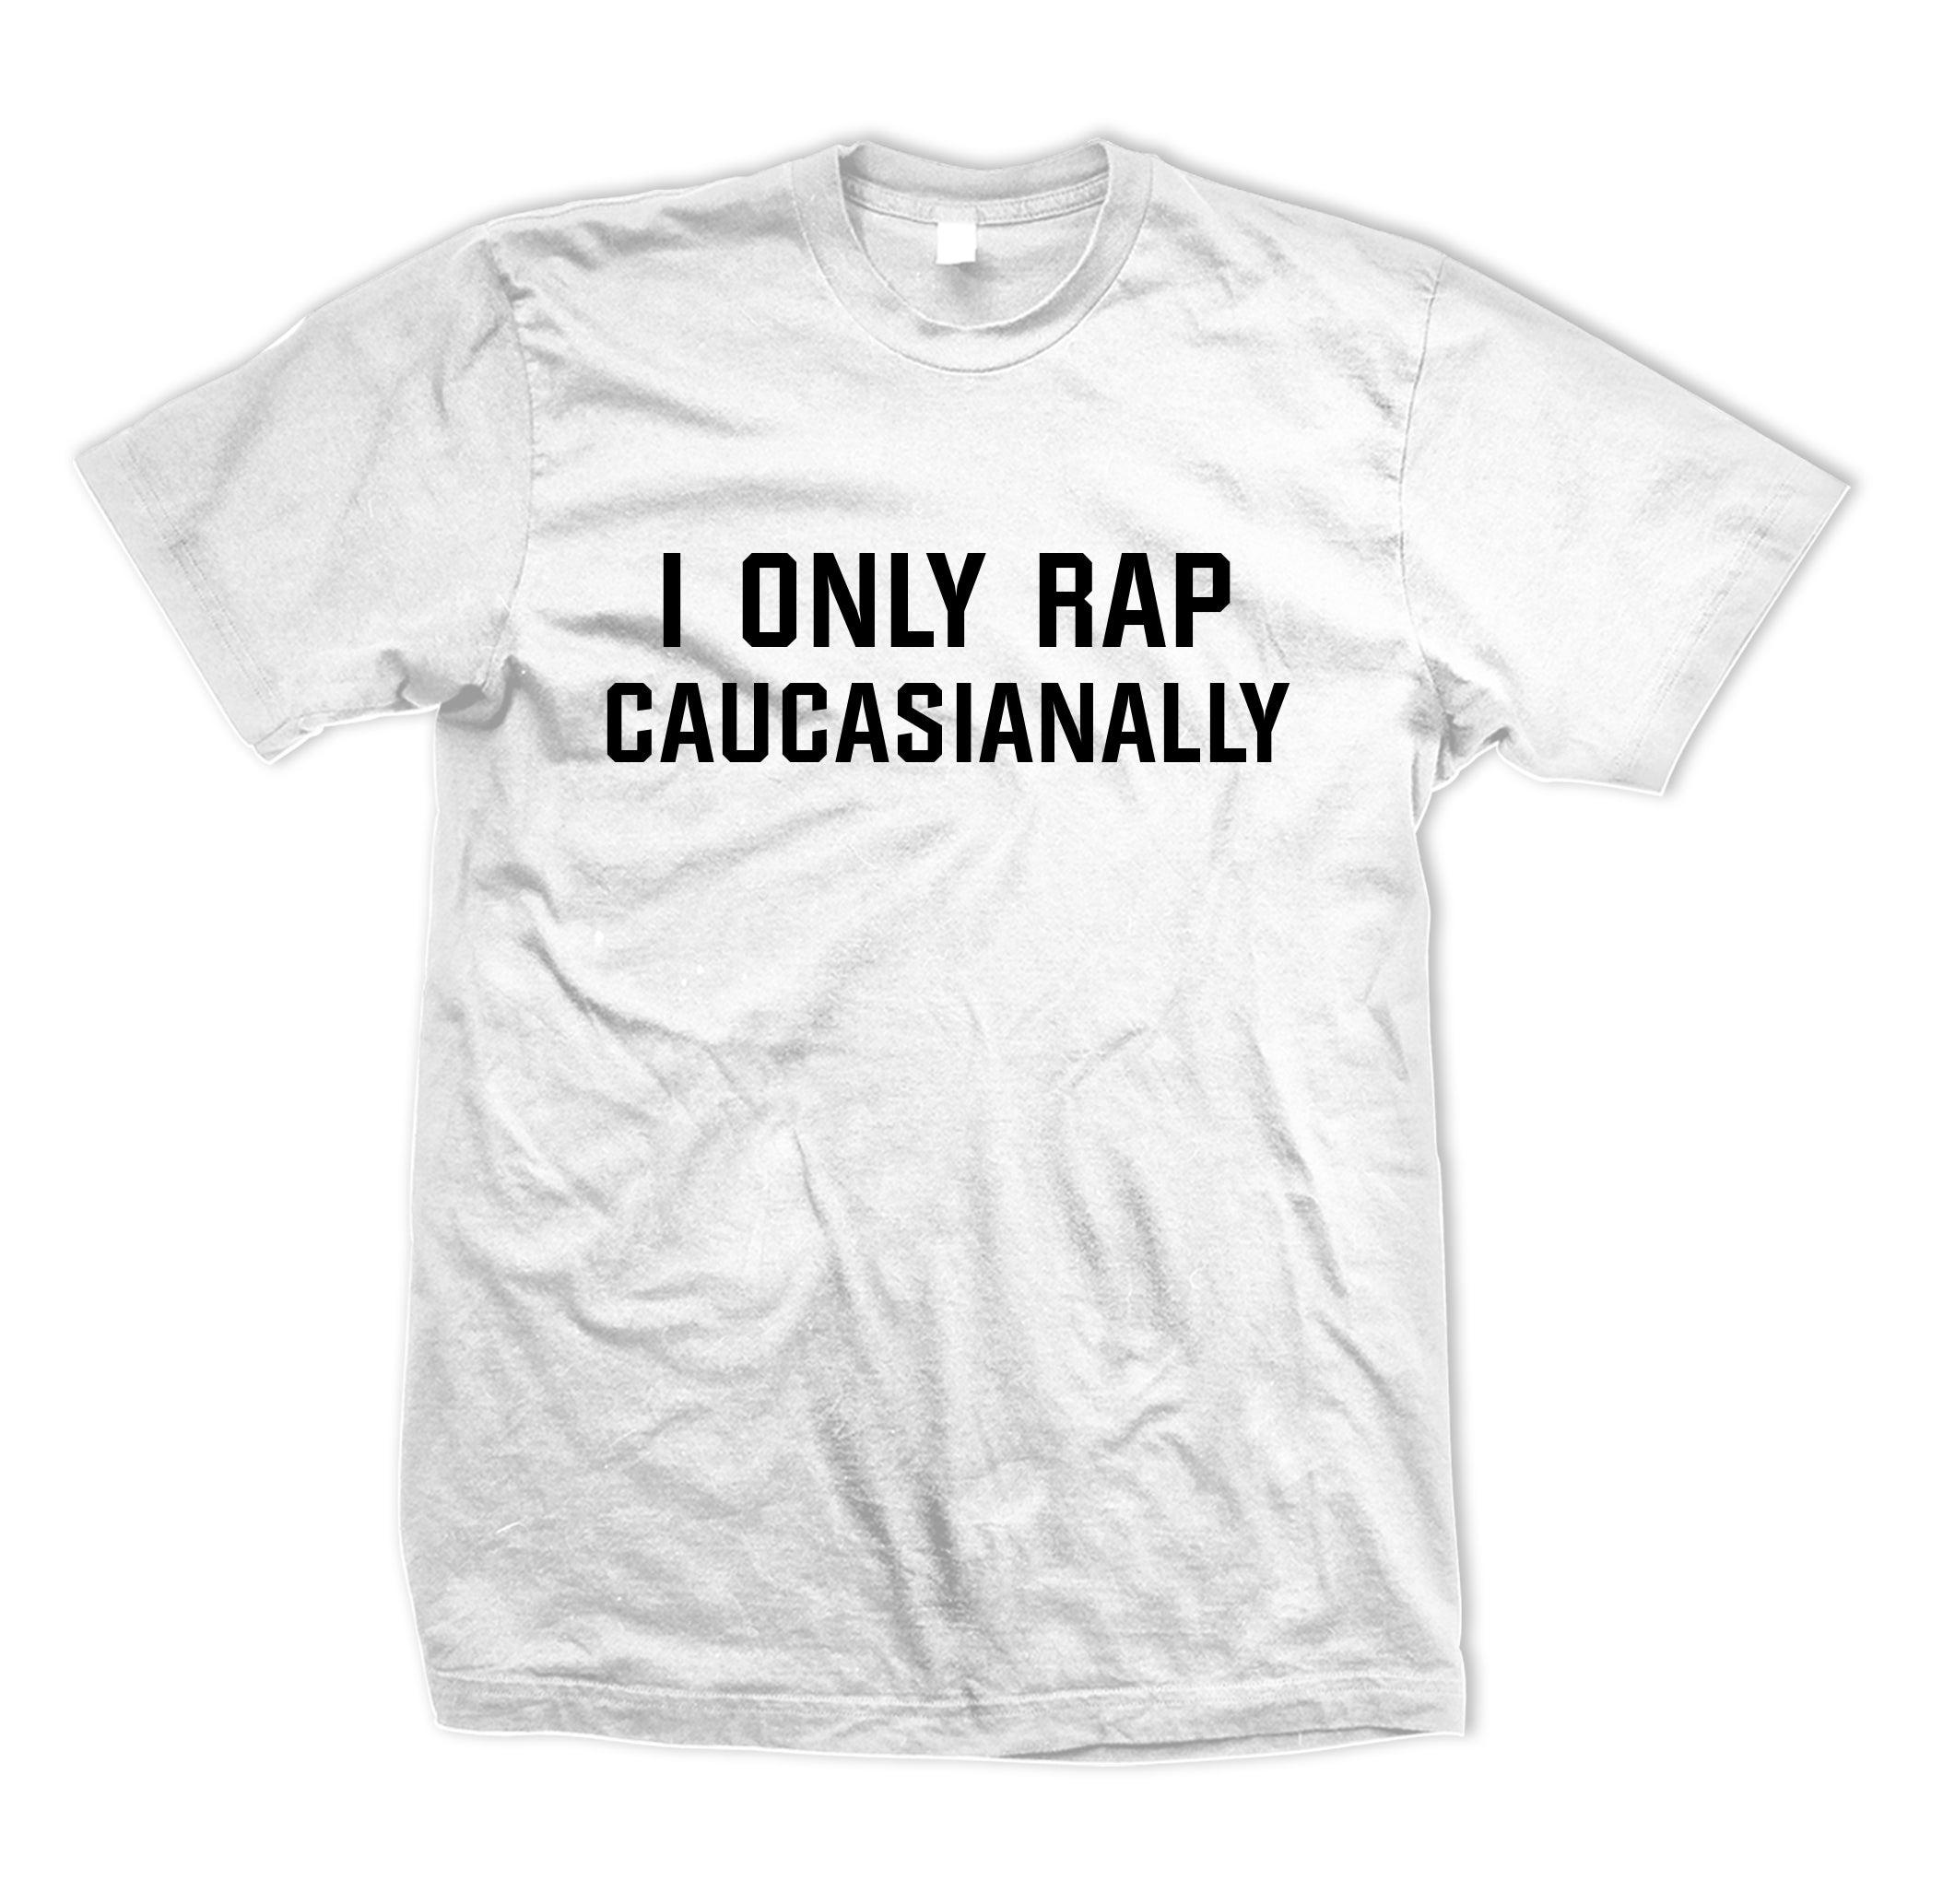 I Only Rap Caucasianally Tee